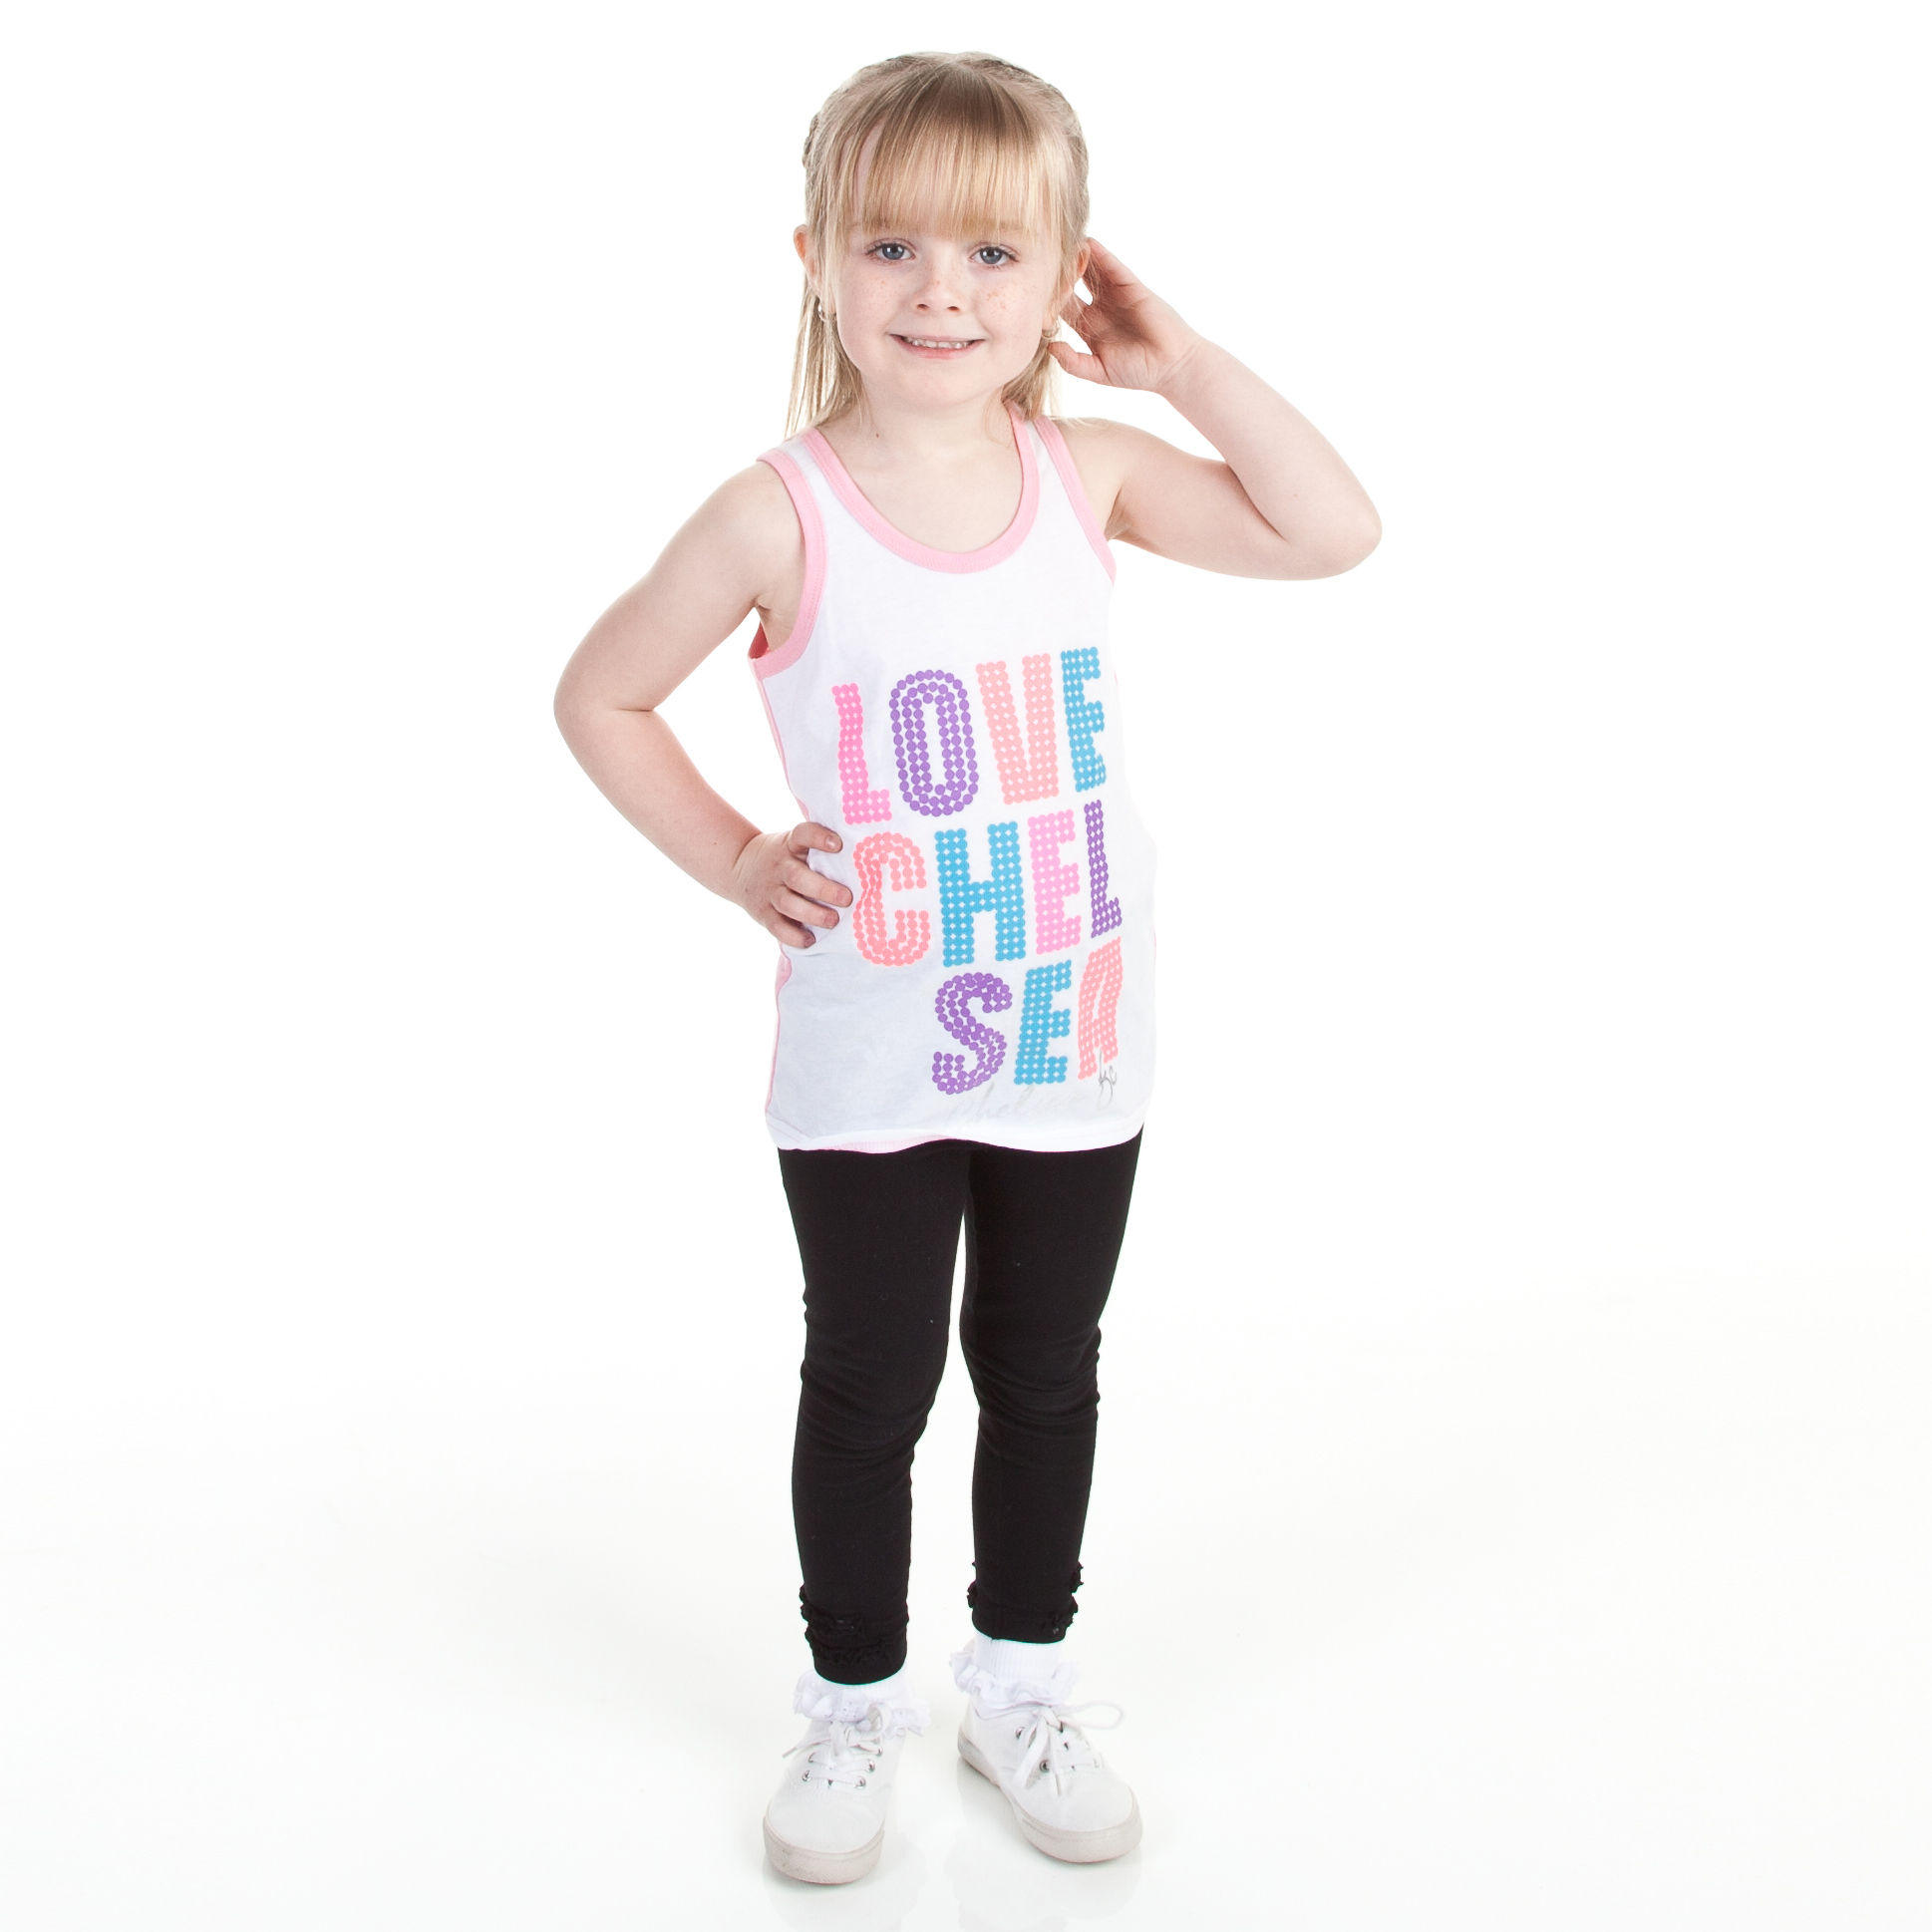 Chelsea Contrast Back Love Graphic Vest - White - Infant Girls